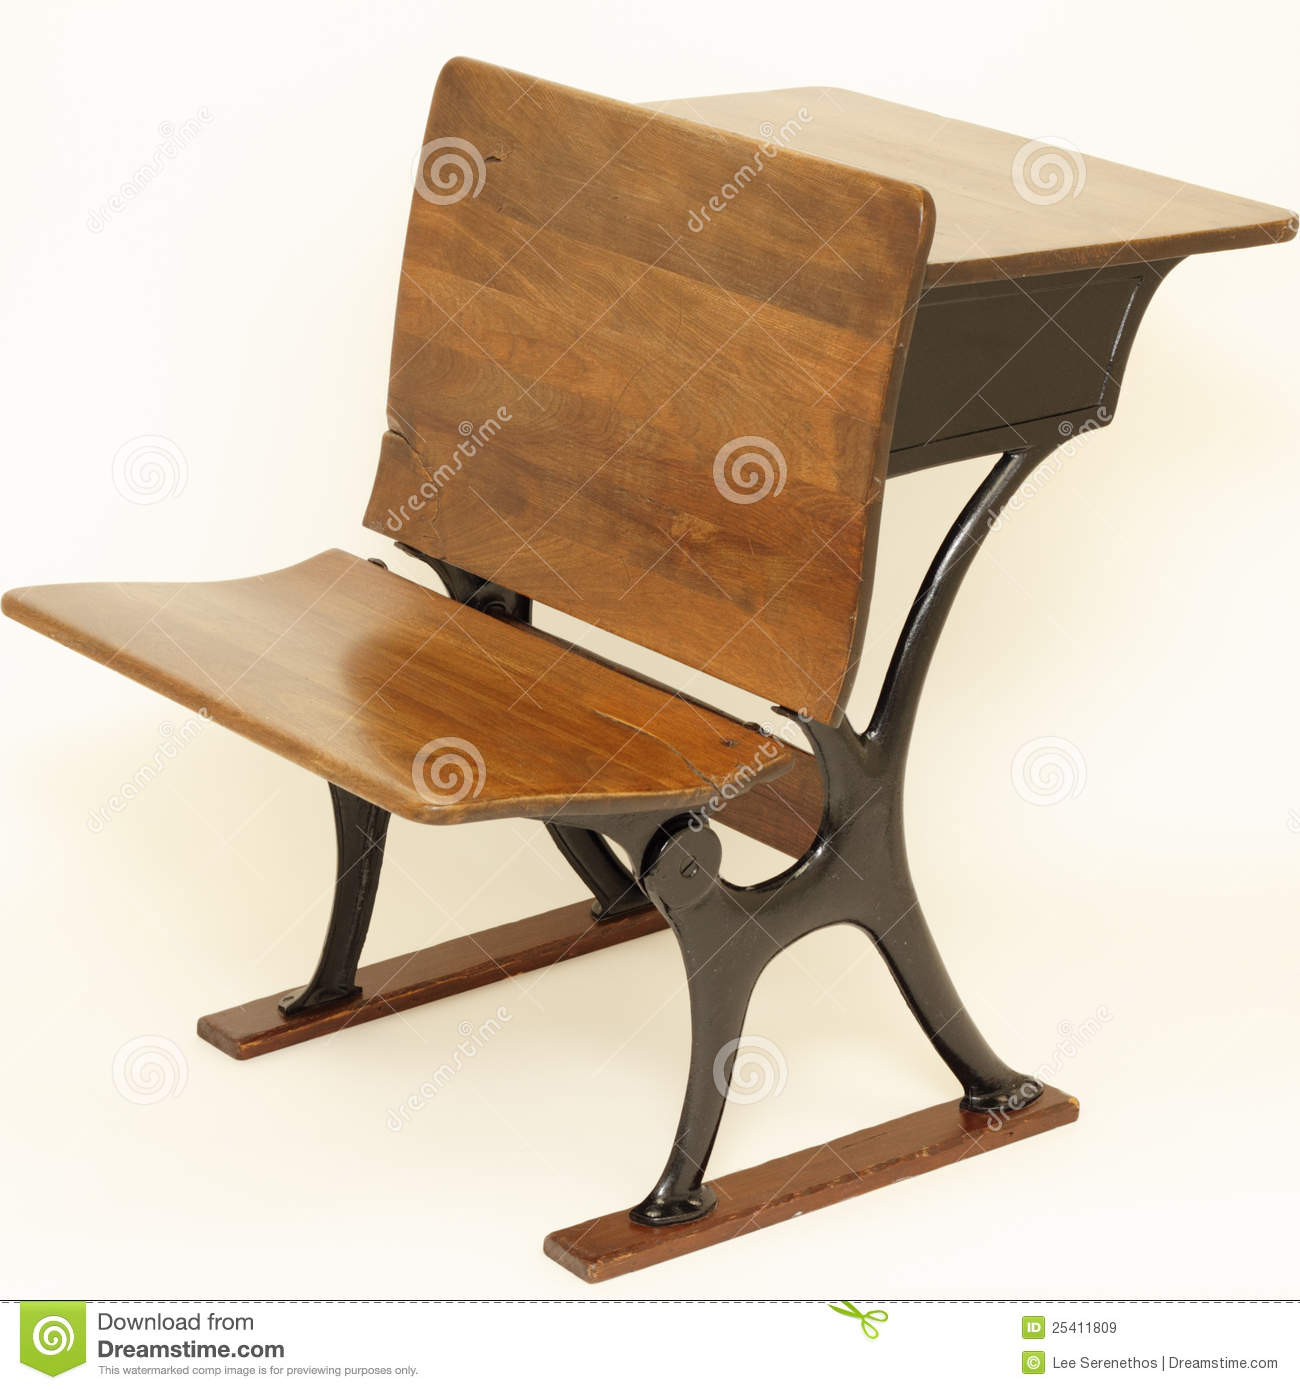 vintage school desk chair combo wheelchair yoga pdf antique and royalty free stock images